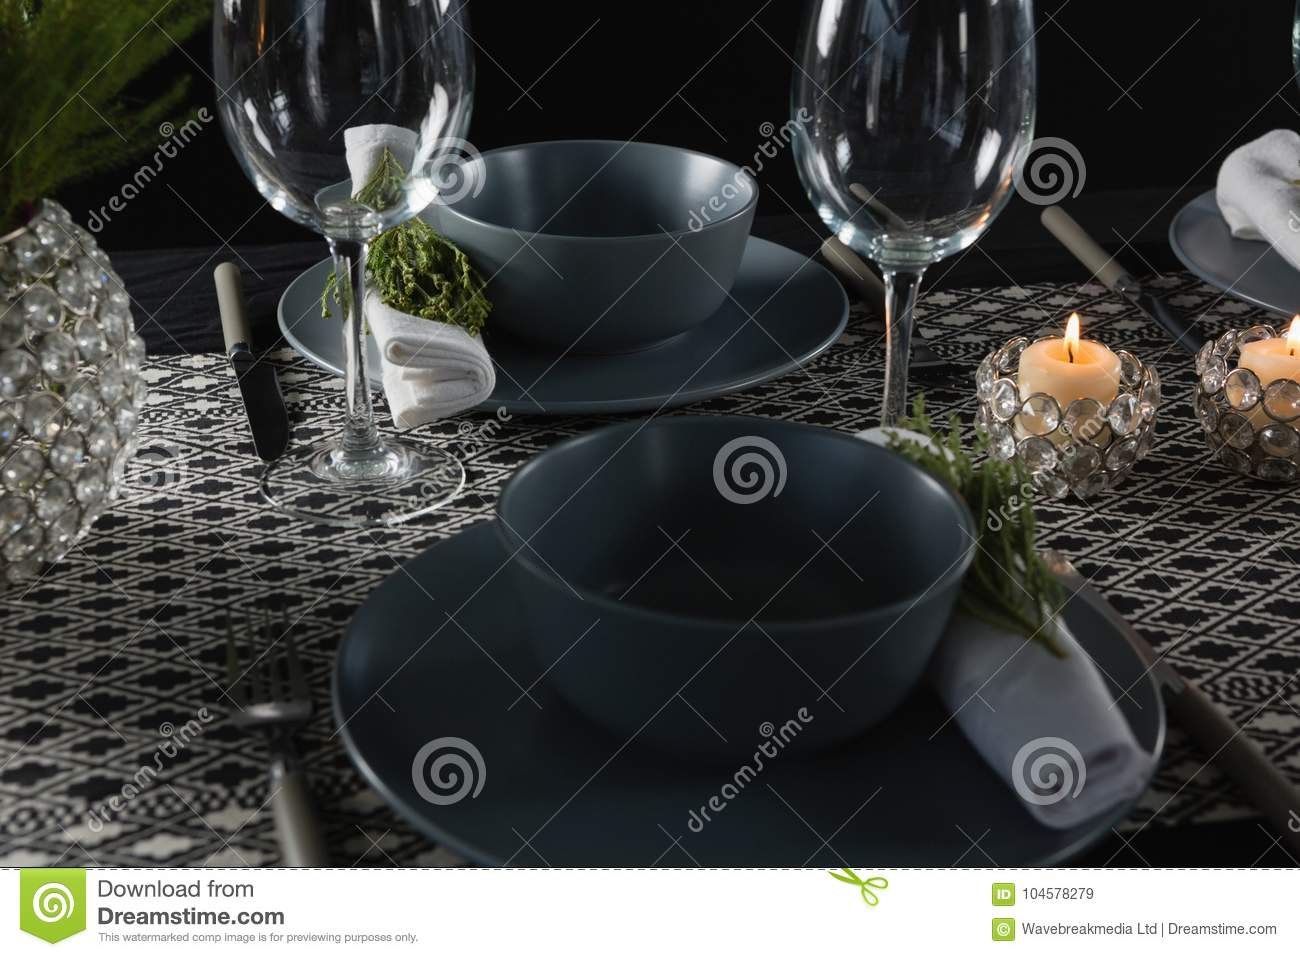 Elegance table setting with empty wine glasses and lit candle